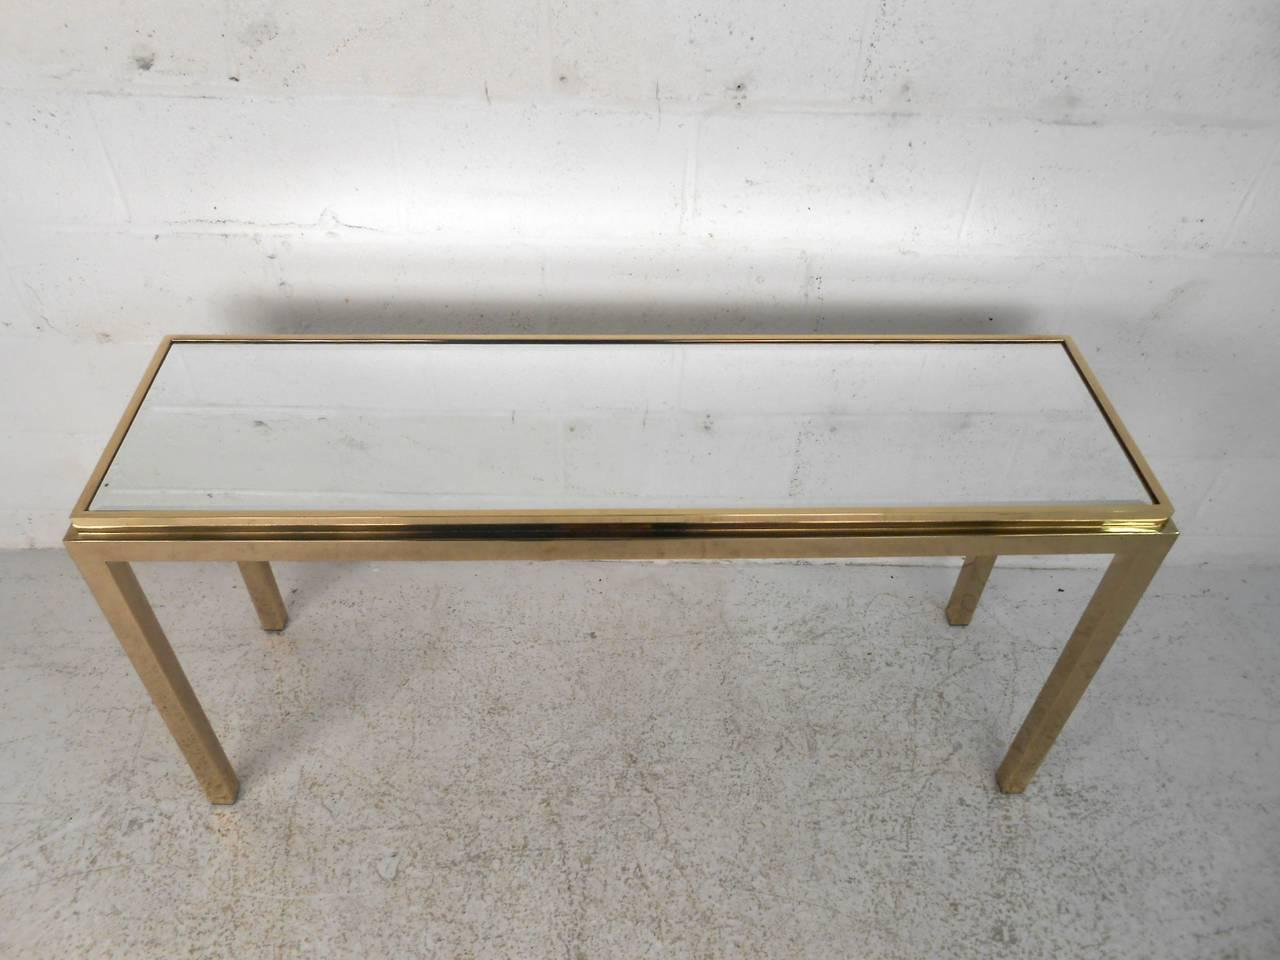 brass console table. Vintage Brass Console Table With Beveled Mirror Top - Image 4 Of 11